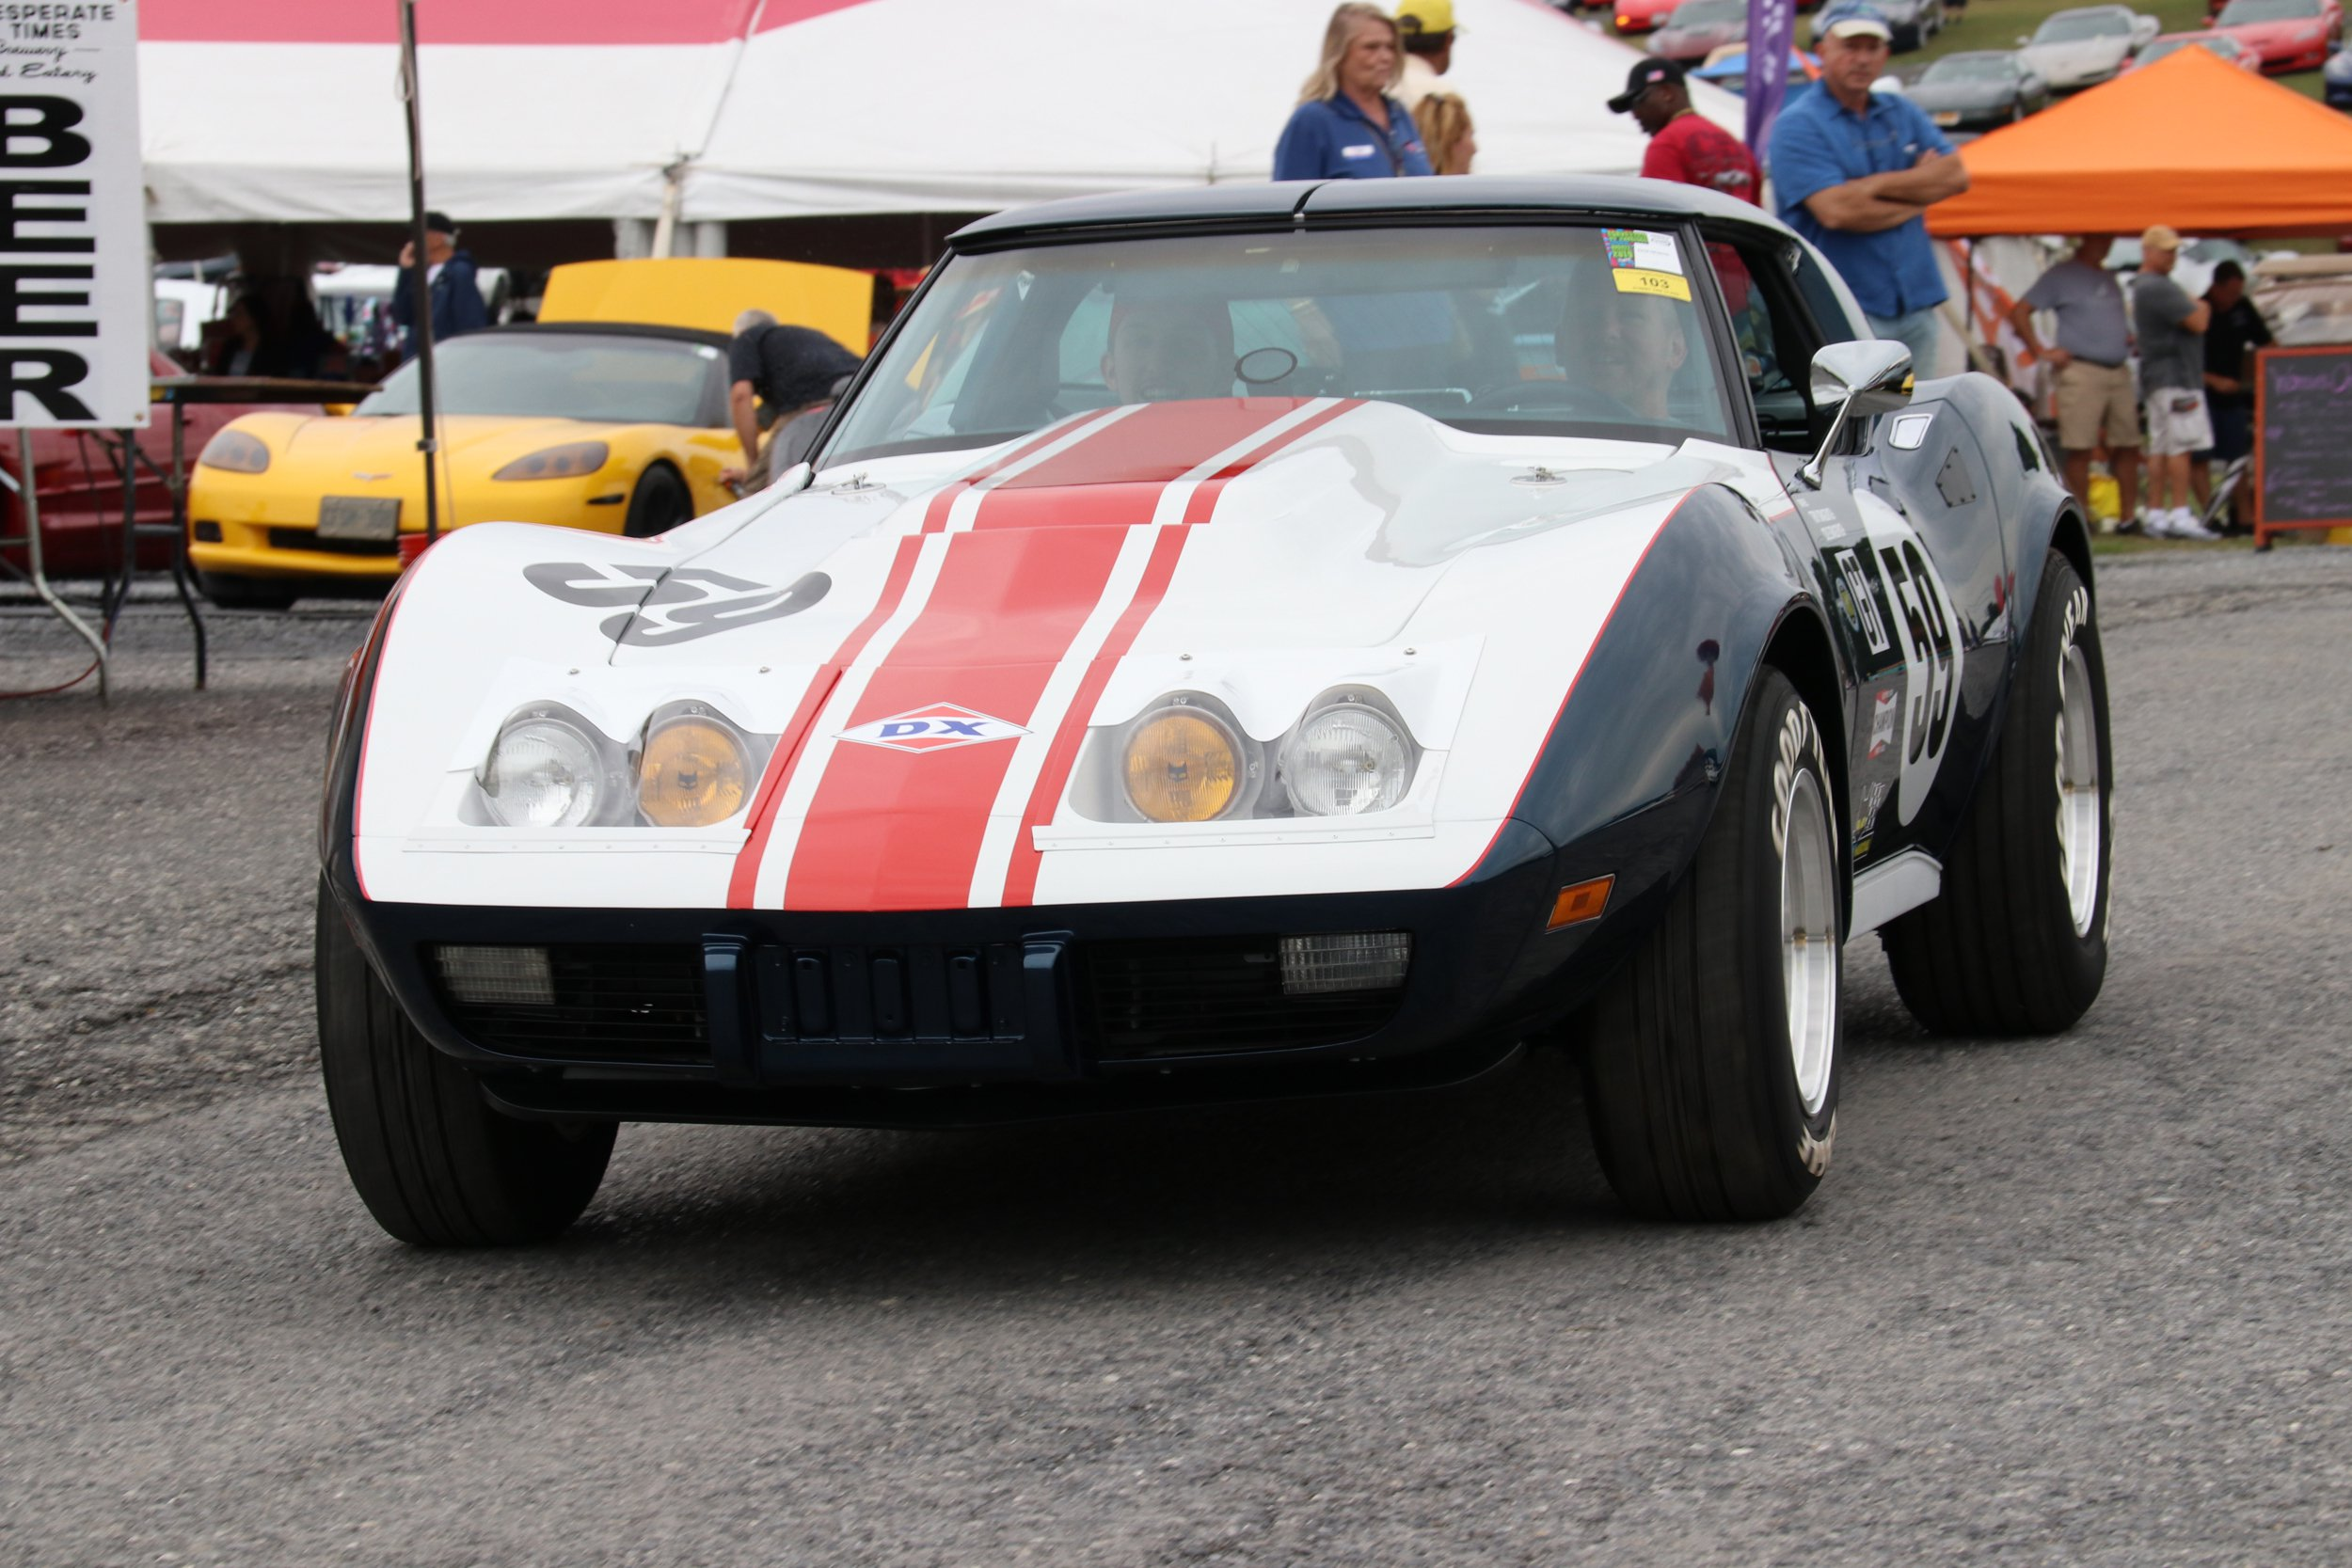 corvettes-at-carlisle-2019-one-for-the-record-books-2019-08-28_20-24-59_969296.jpg